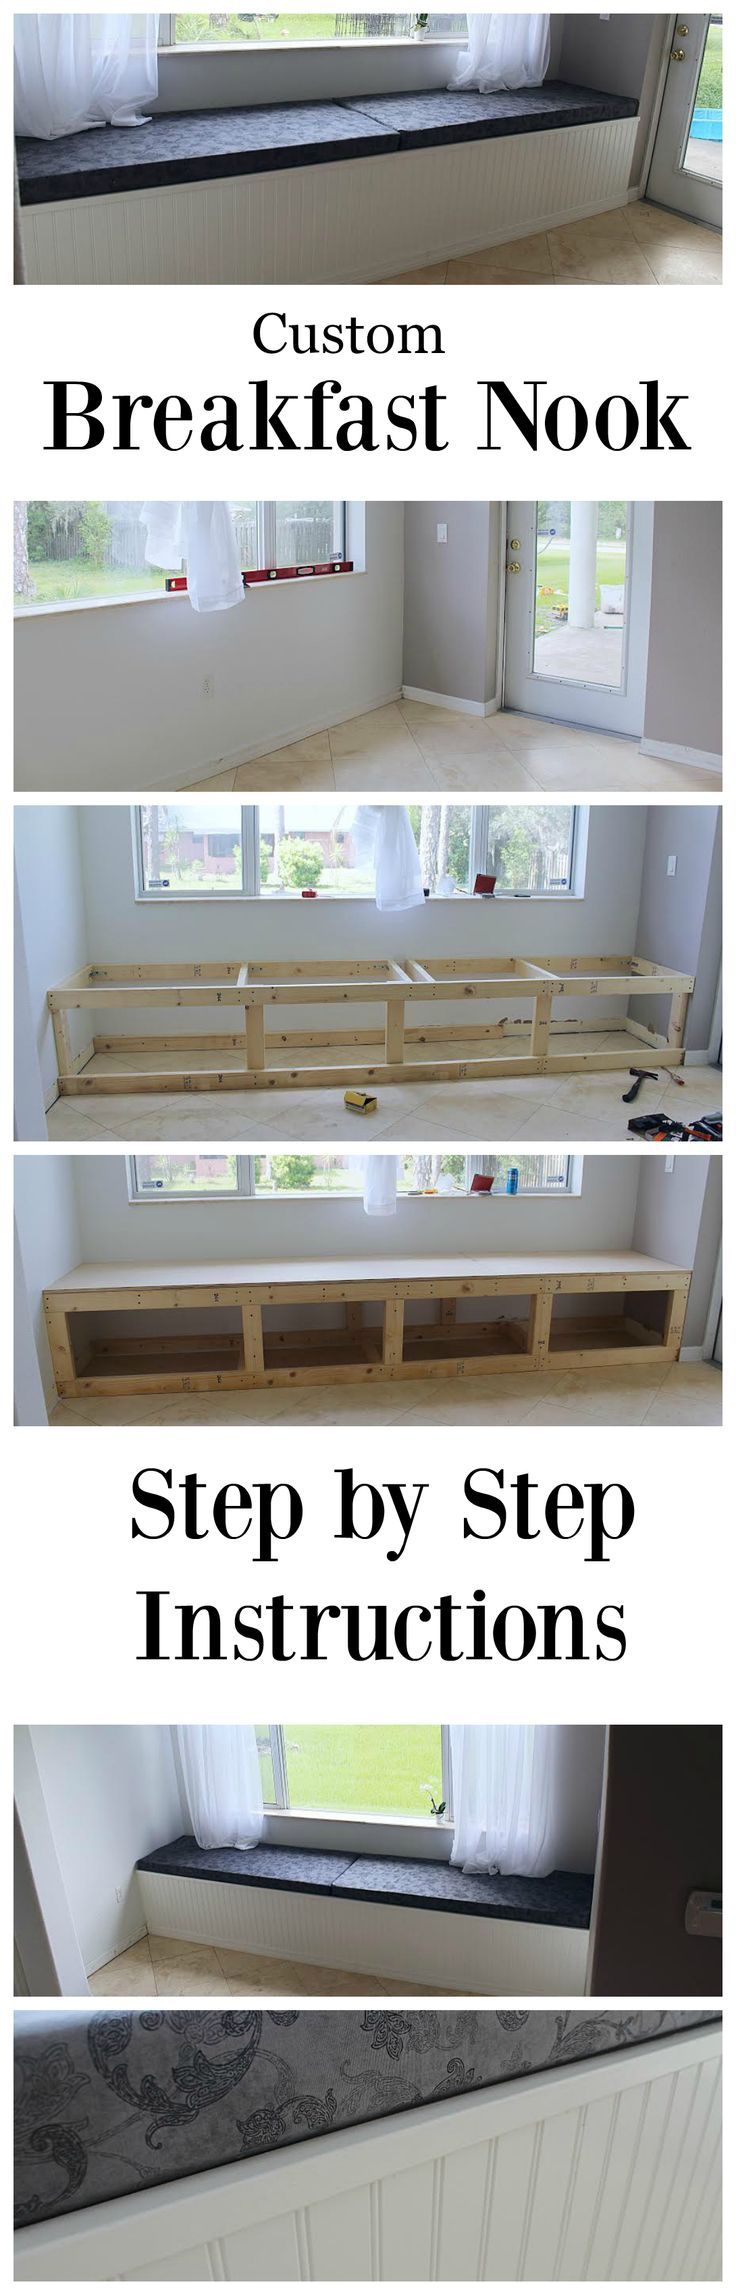 How to Build a Custom Breakfast Nook for Your Home! Step-by-Step Photos.